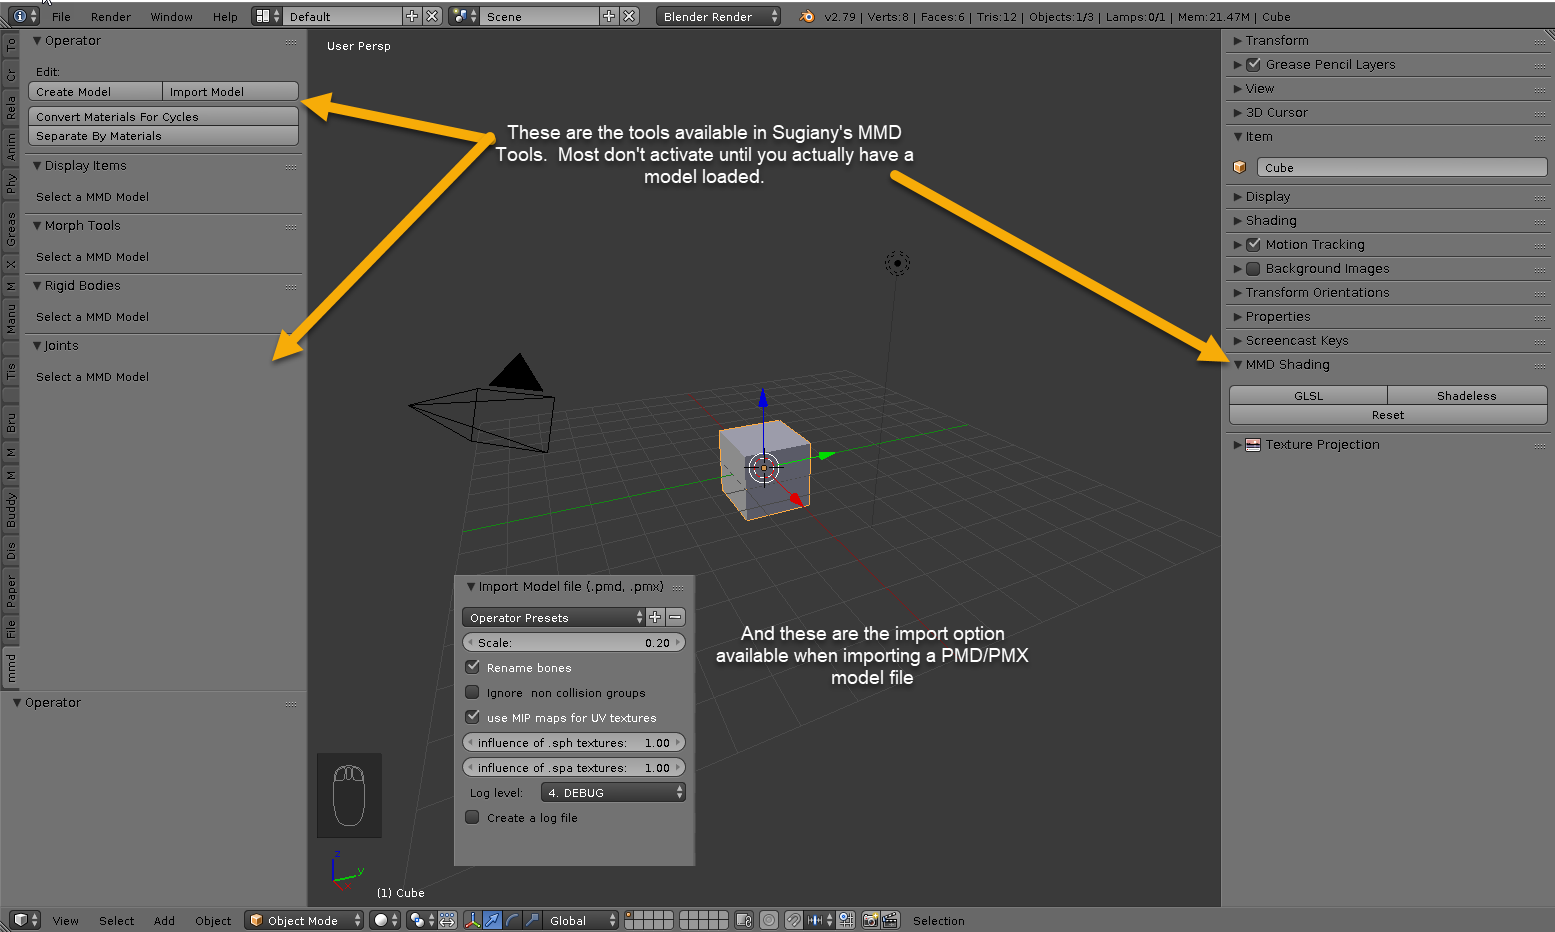 How to add mmd tools to blender | How to Install Blender: 13 Steps